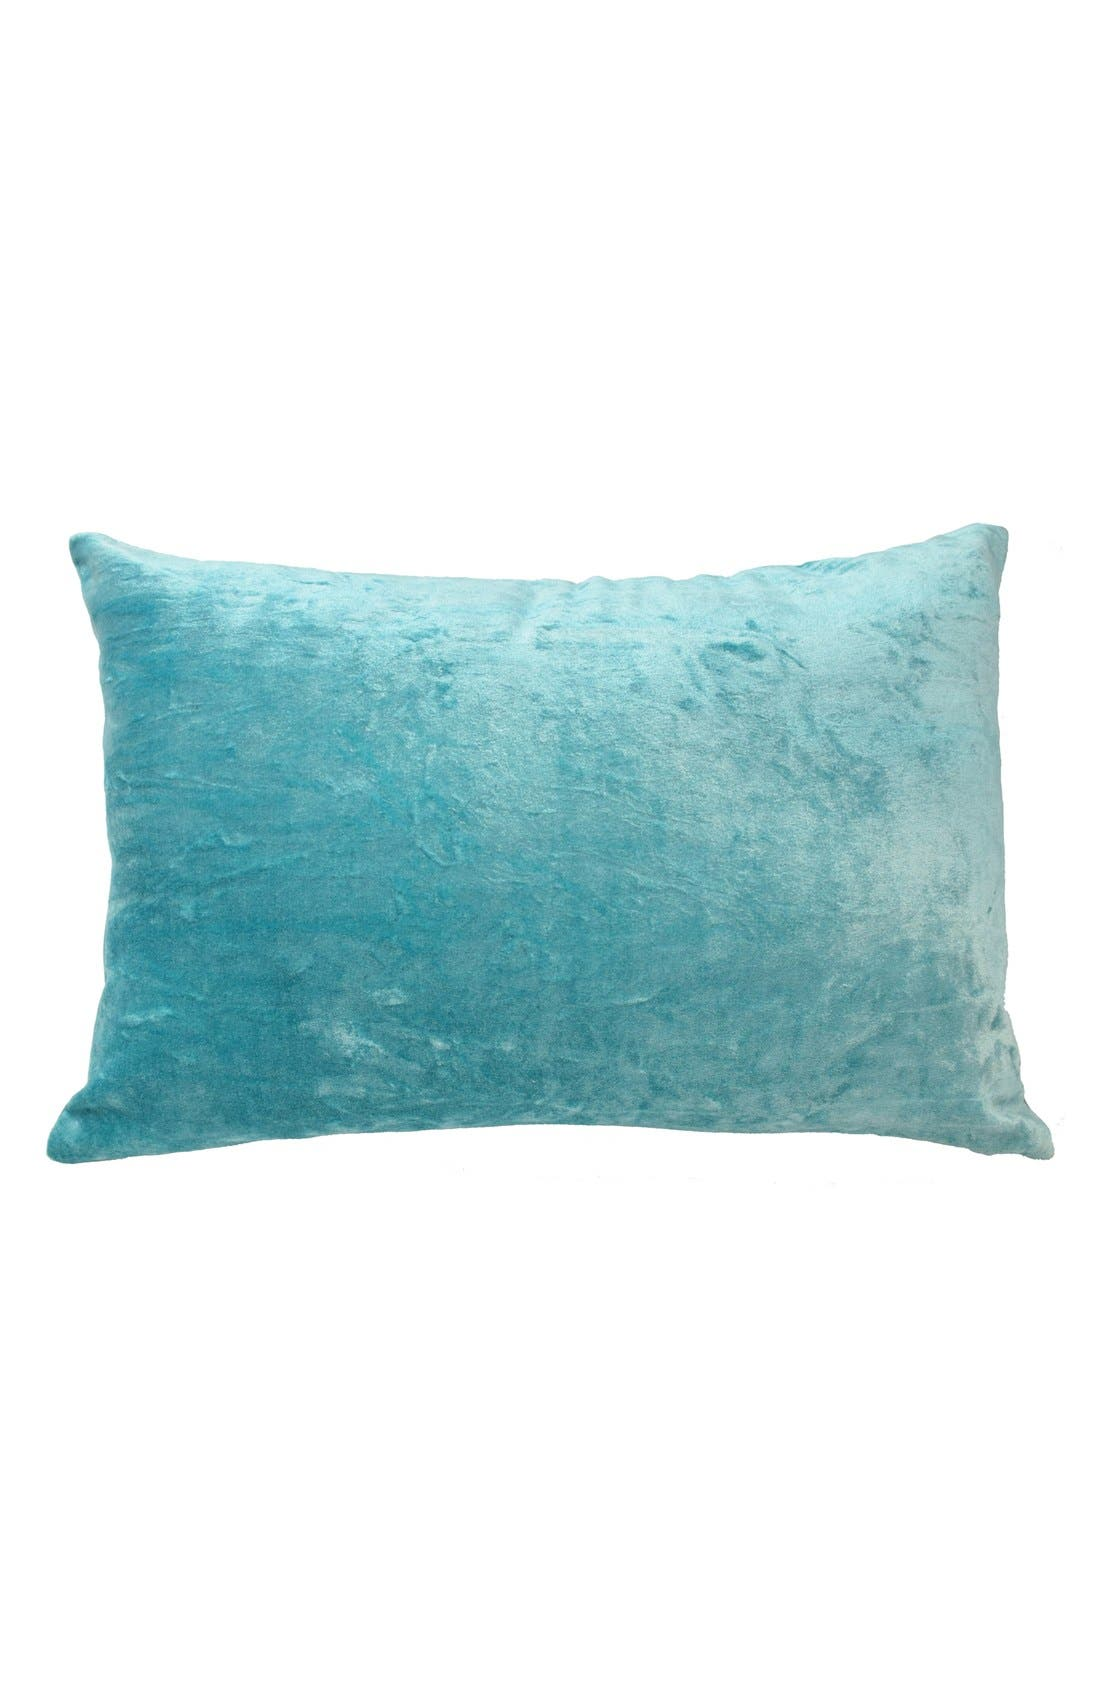 'Feliz' Pillow,                         Main,                         color, Teal